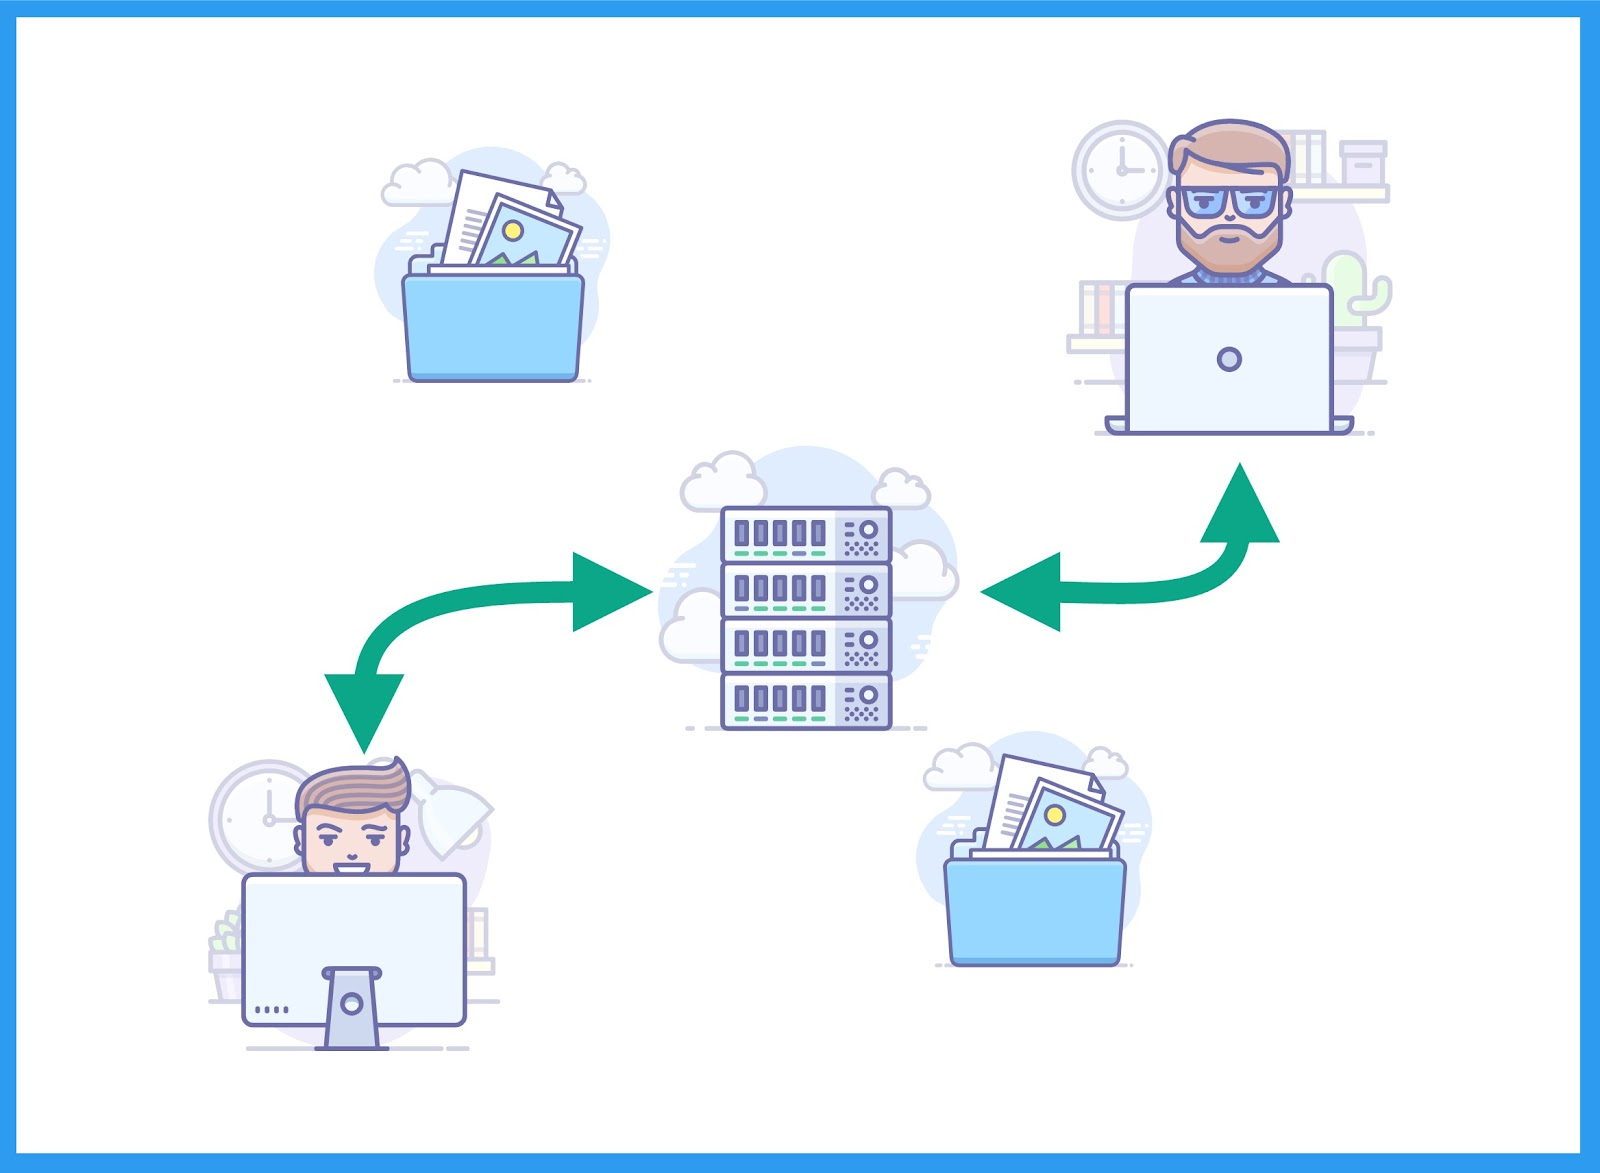 Graphic showing flow of files via FTP in ecommerce.